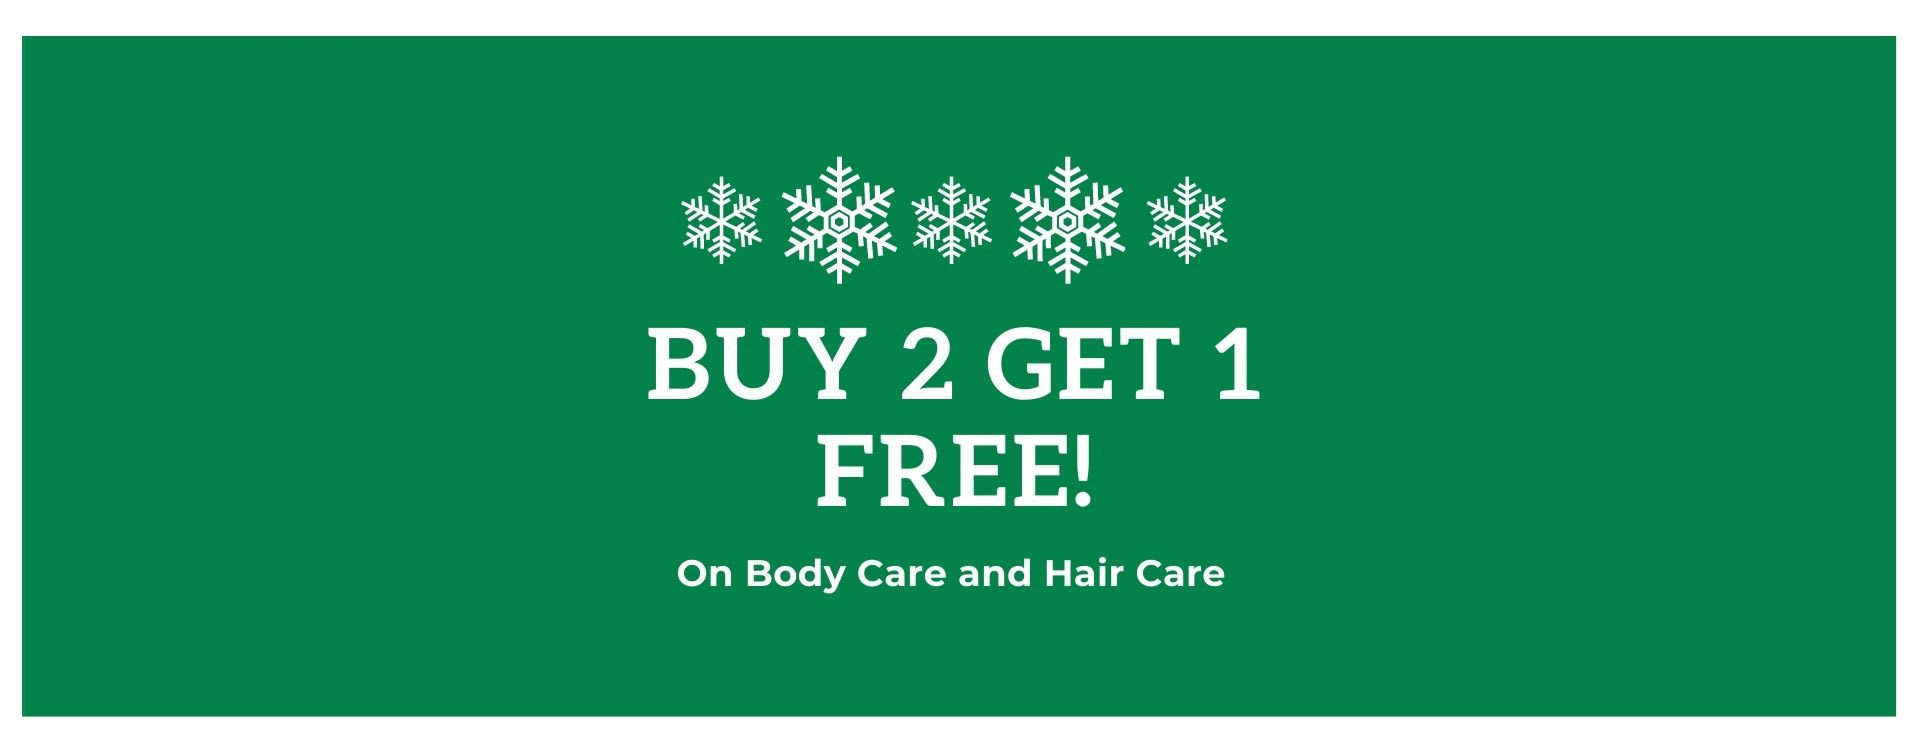 3 FOR 2 ON ALL BODY AND SKINCARE PRODUCTS